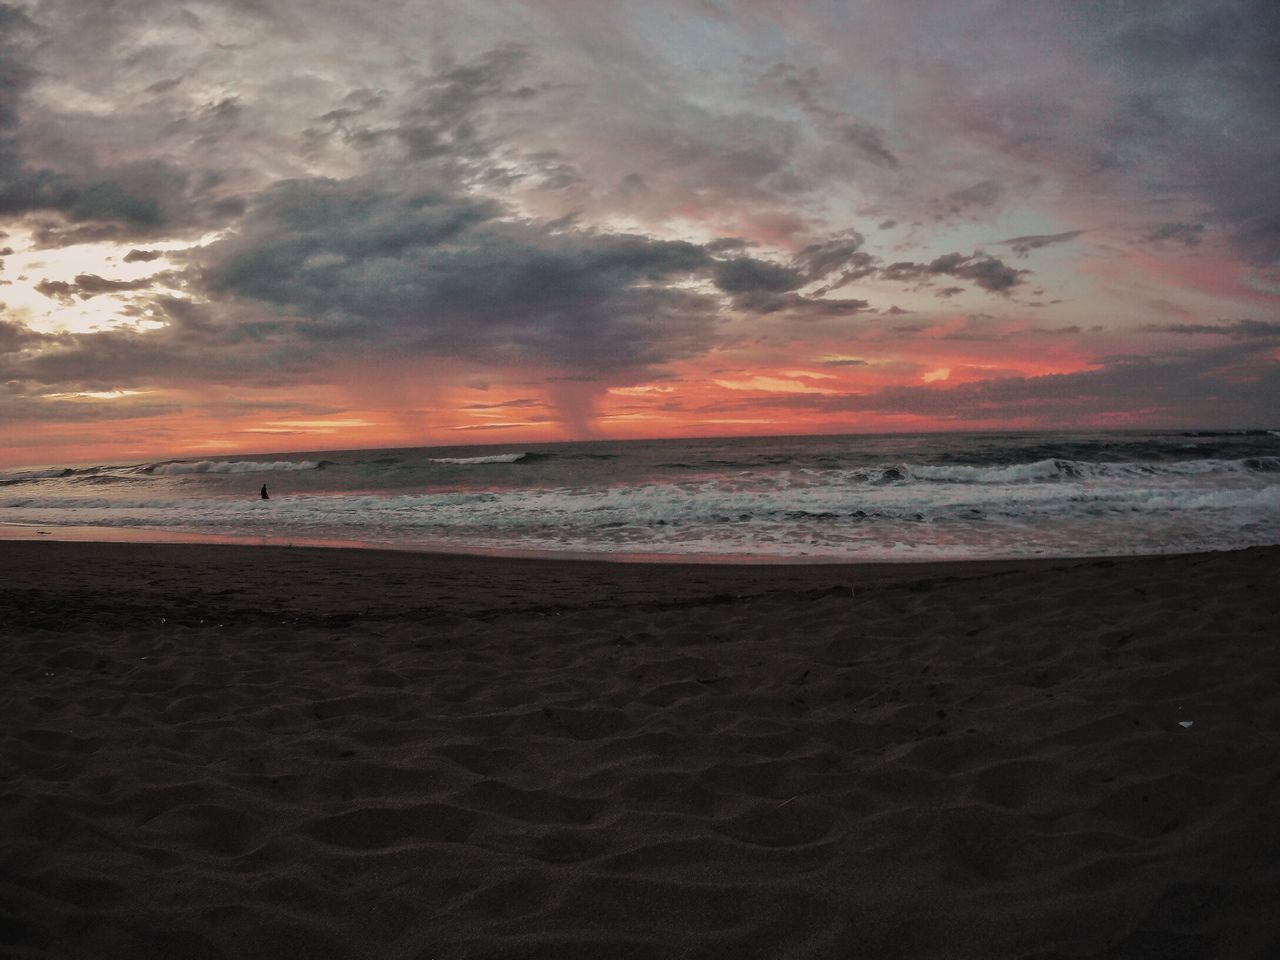 beach, sand, sea, sunset, shore, horizon over water, sky, beauty in nature, nature, tranquility, cloud - sky, scenics, tranquil scene, water, no people, wave, outdoors, day